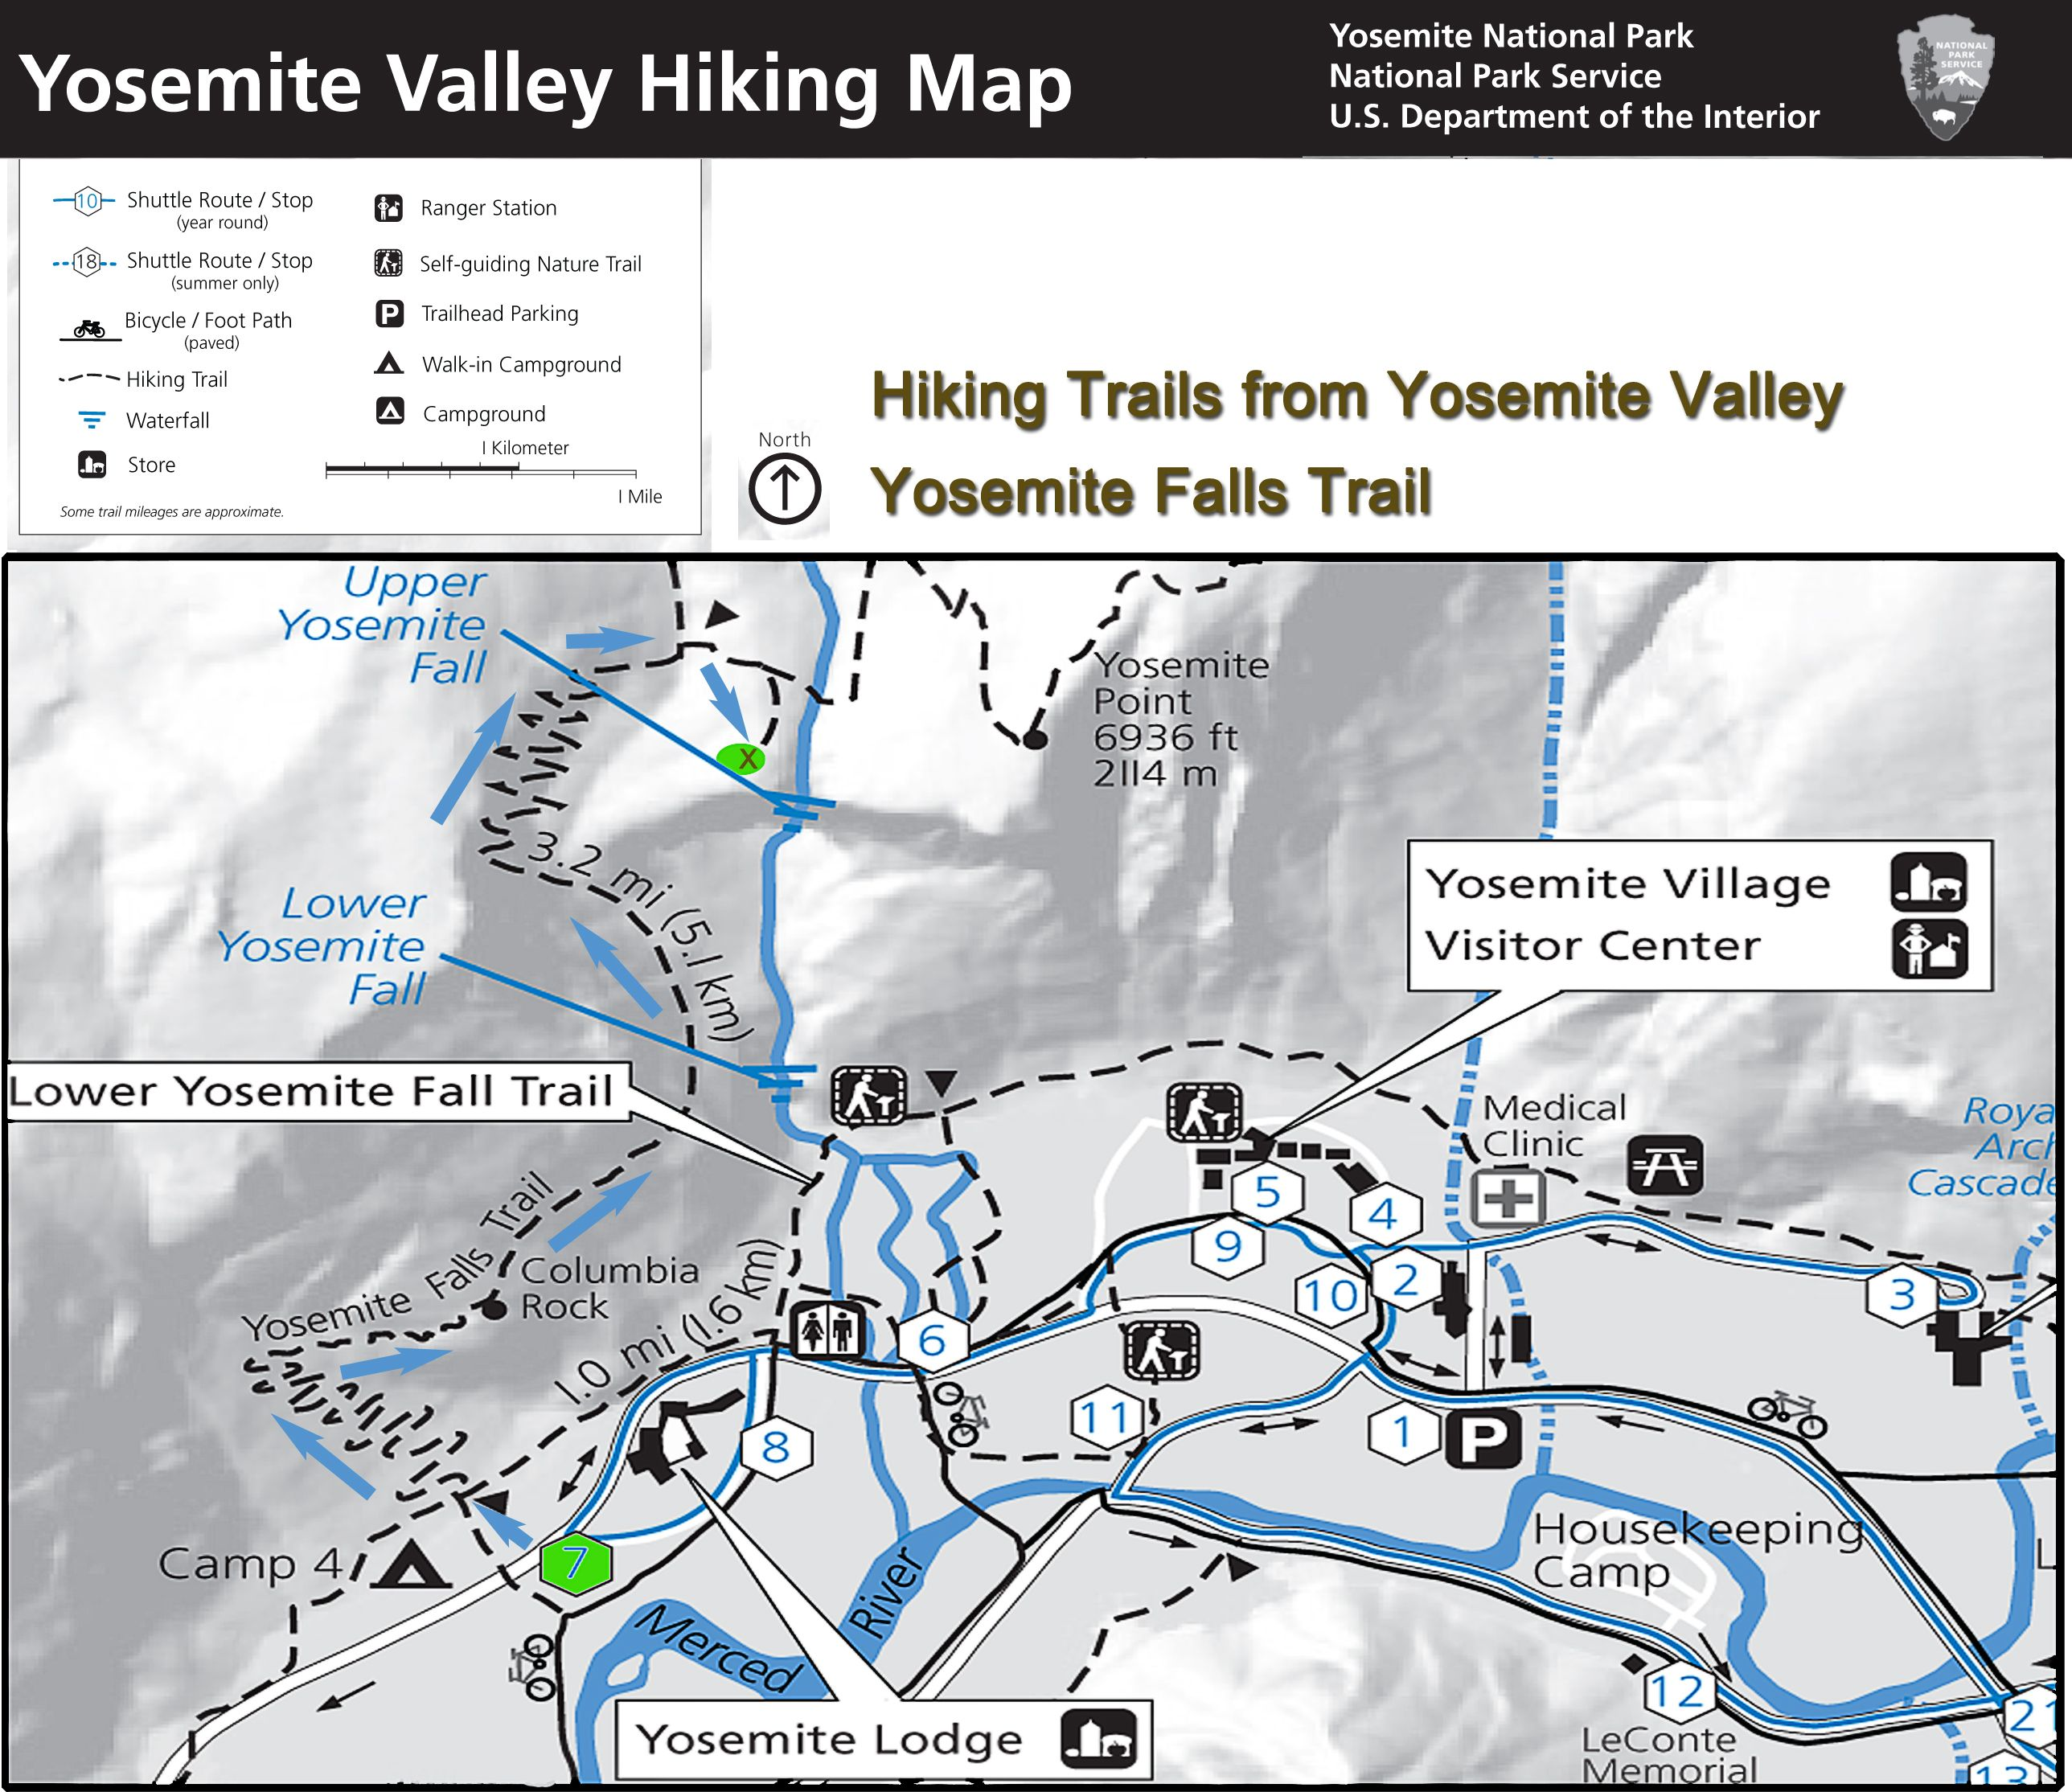 Yosemite Hiking Trail Map on john muir trail map, olympic national forest wilderness map, chilnualna falls trail map, yosemite campground map, yosemite bike path map, yosemite loop trail map, yosemite backcountry map, yosemite falls map, mist trail yosemite map, yosemite tuolumne trail map, yosemite national on the map, yosemite wilderness trails, yosemite map california, mono pass trail map, yosemite half dome view, yosemite topo map, may lake yosemite map, yosemite mountain map, yosemite backcountry camping, yosemite trail map pdf,